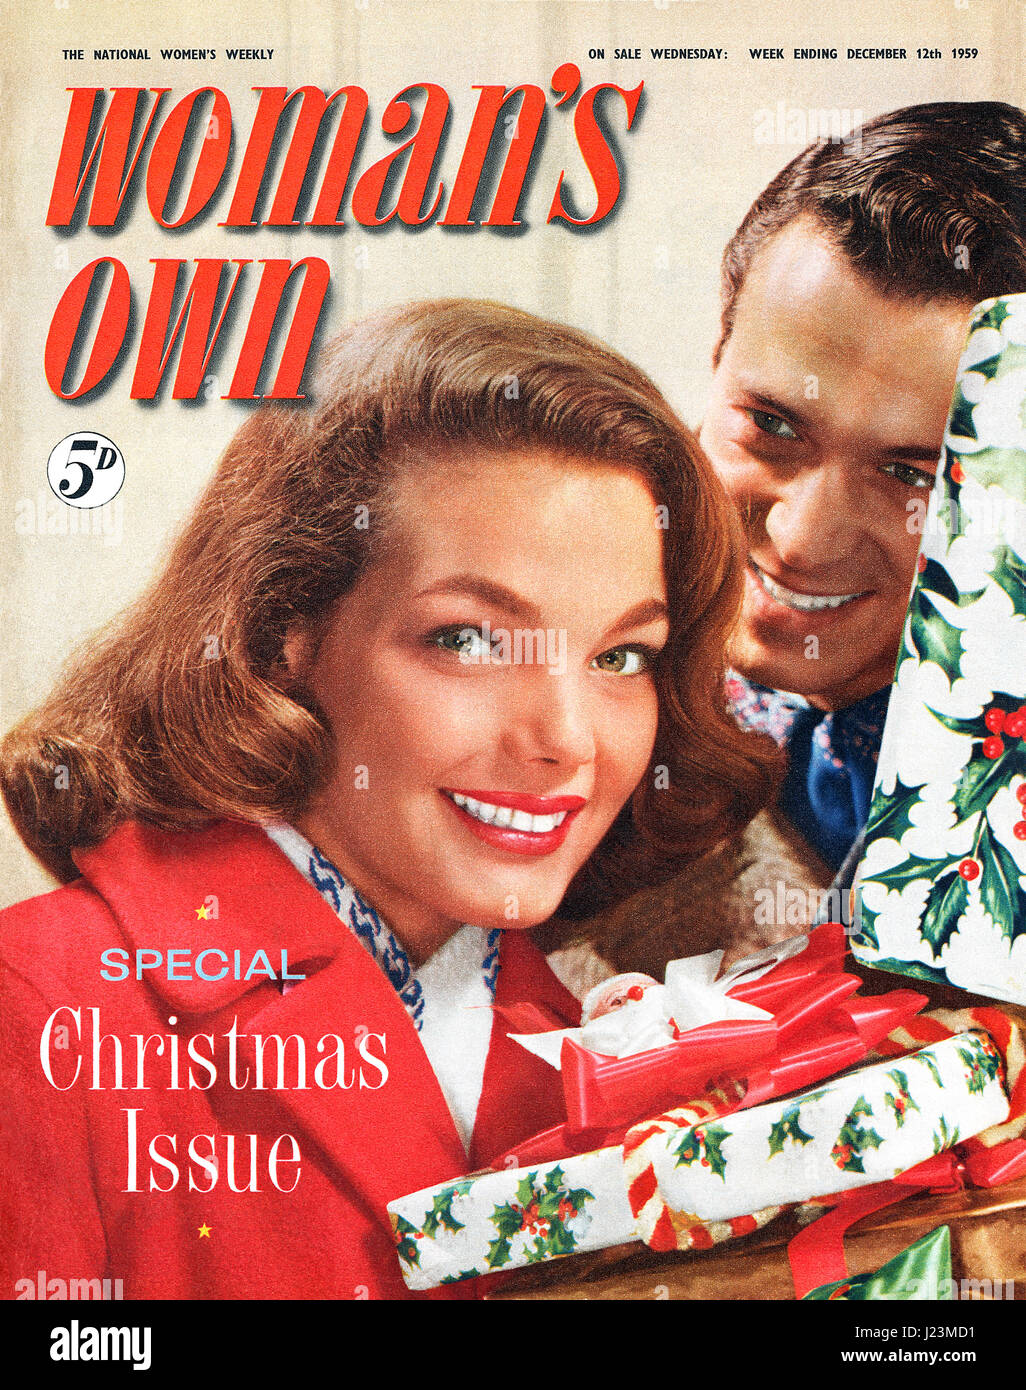 Front cover of Woman's Own magazine for the week ending December 12th 1959. Special Christmas issue. - Stock Image